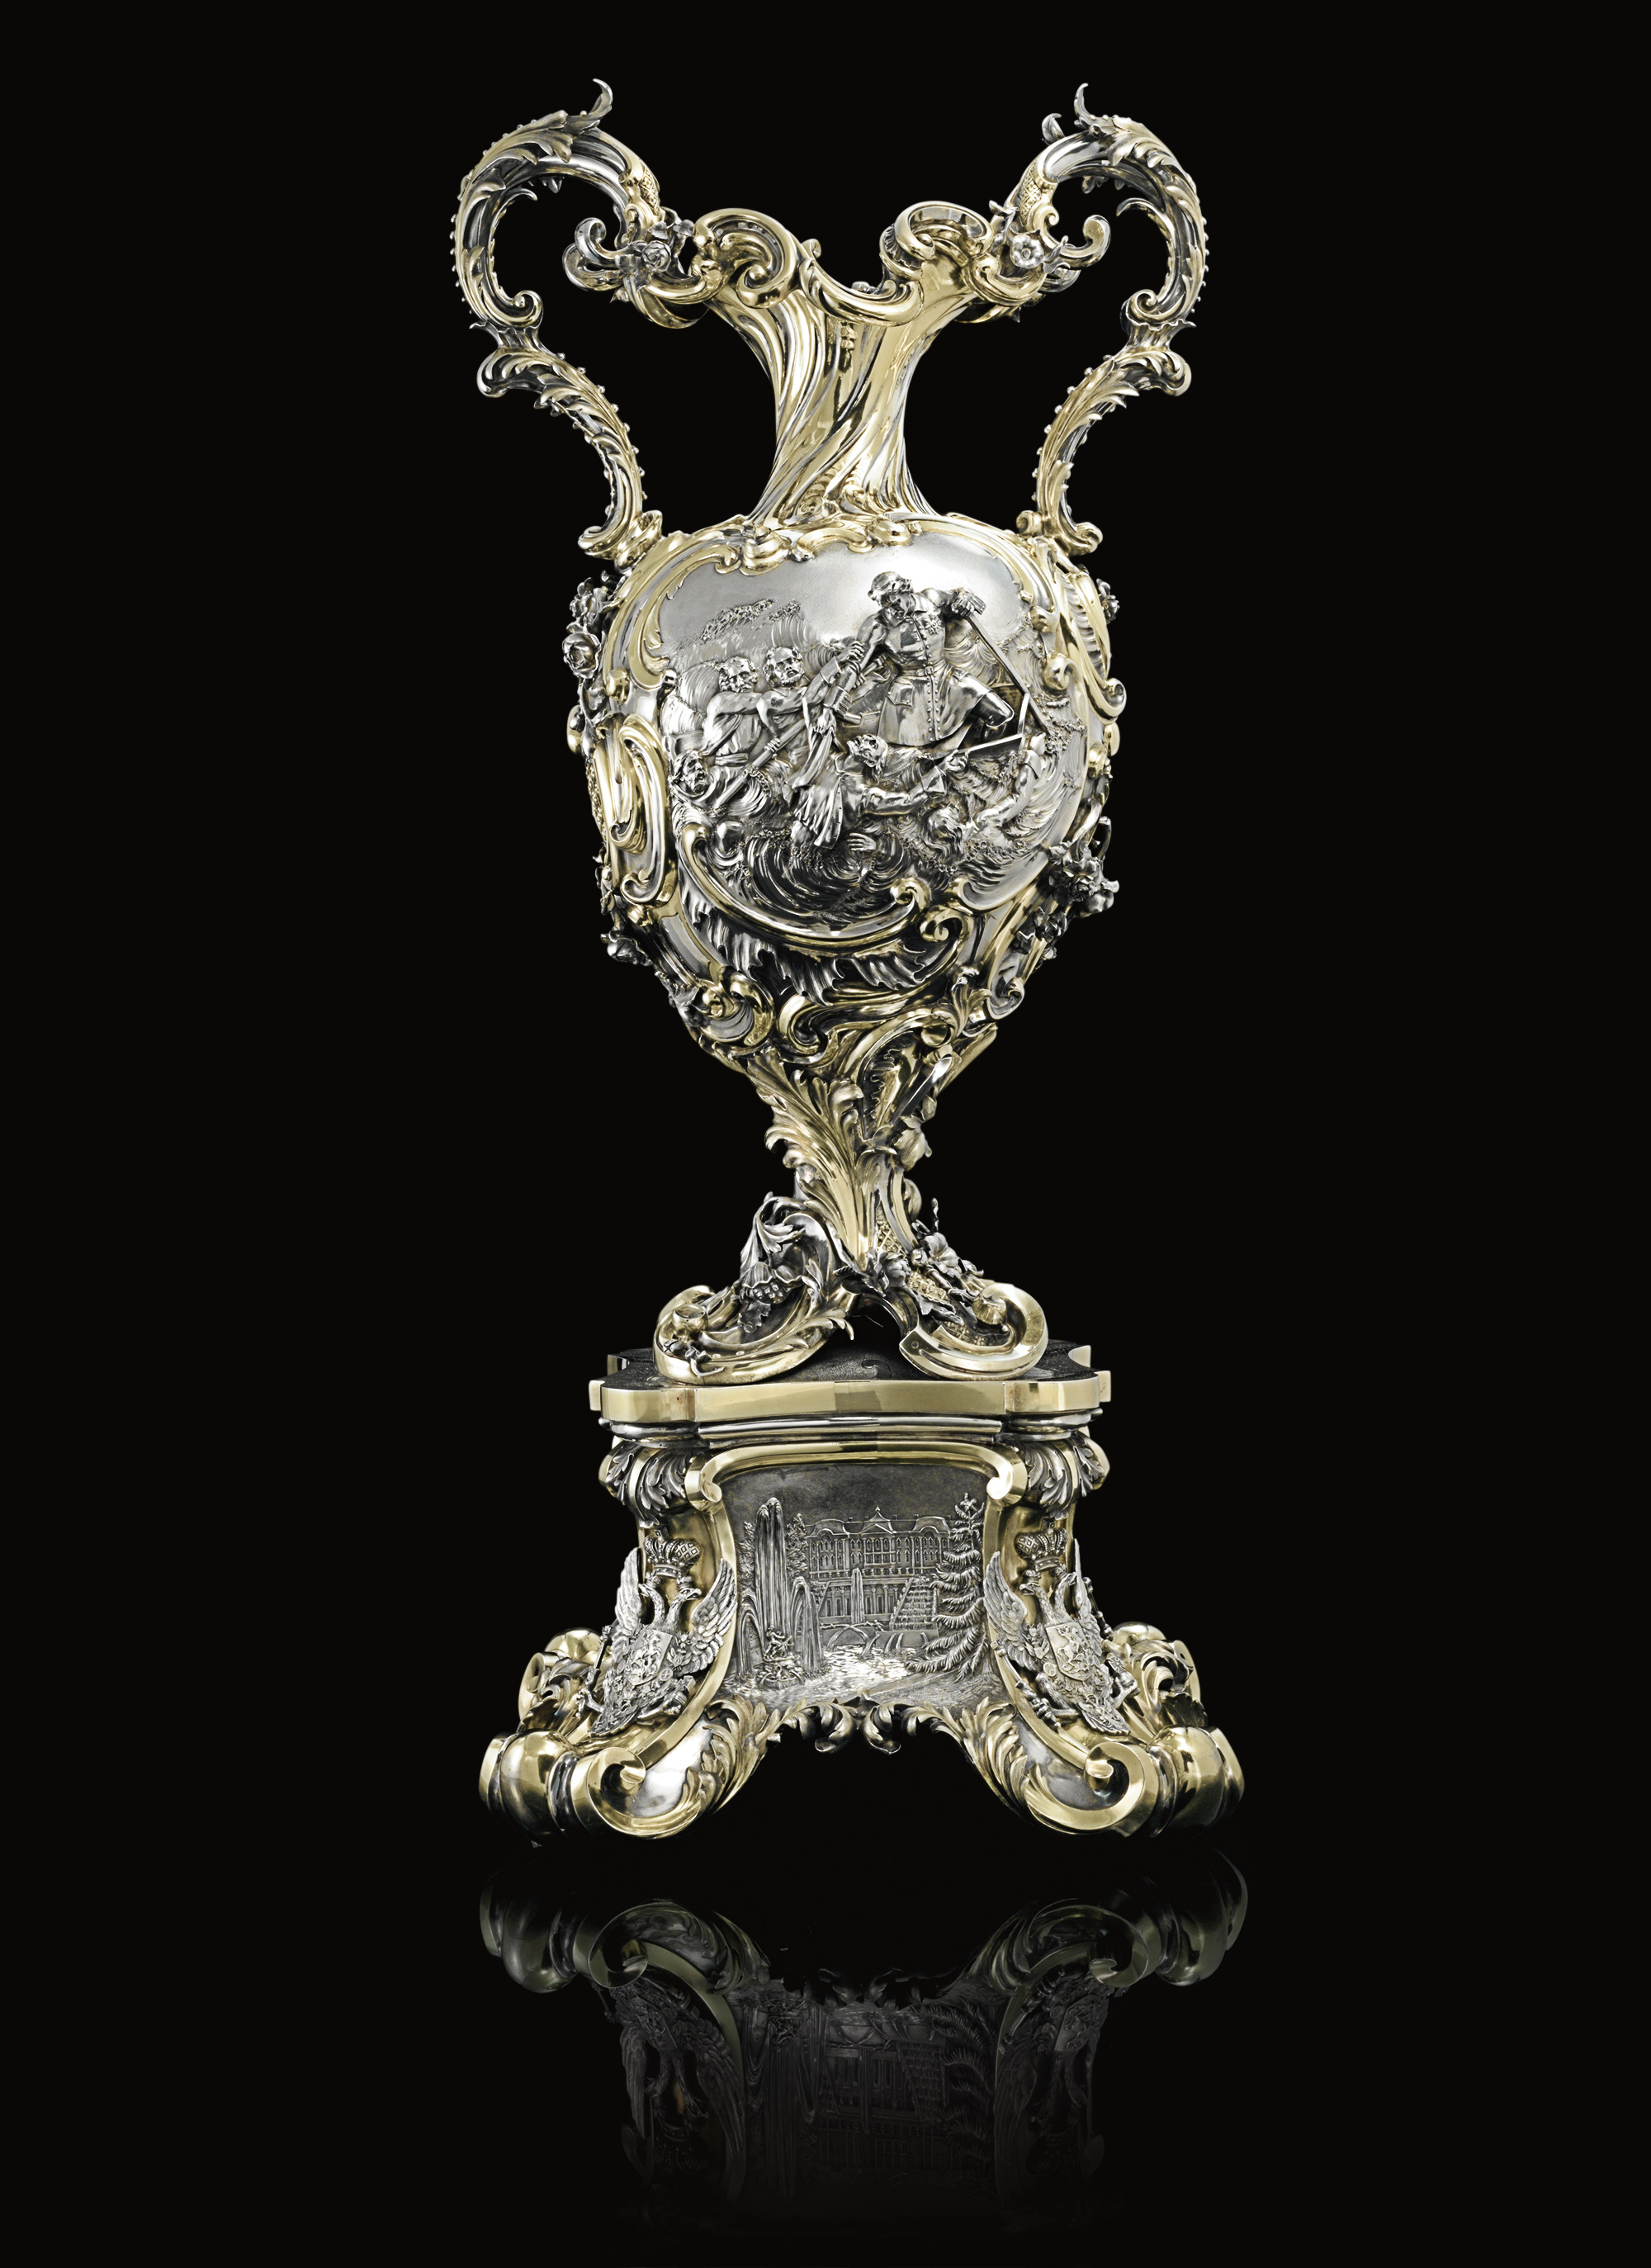 THE EMPEROR'S PLATE (ASCOT GOLD CUP): A MAGNIFICENT VICTORIAN SILVER RACING TROPHY, PRESENTED BY EMPEROR NICHOLAS I OF RUSSIA